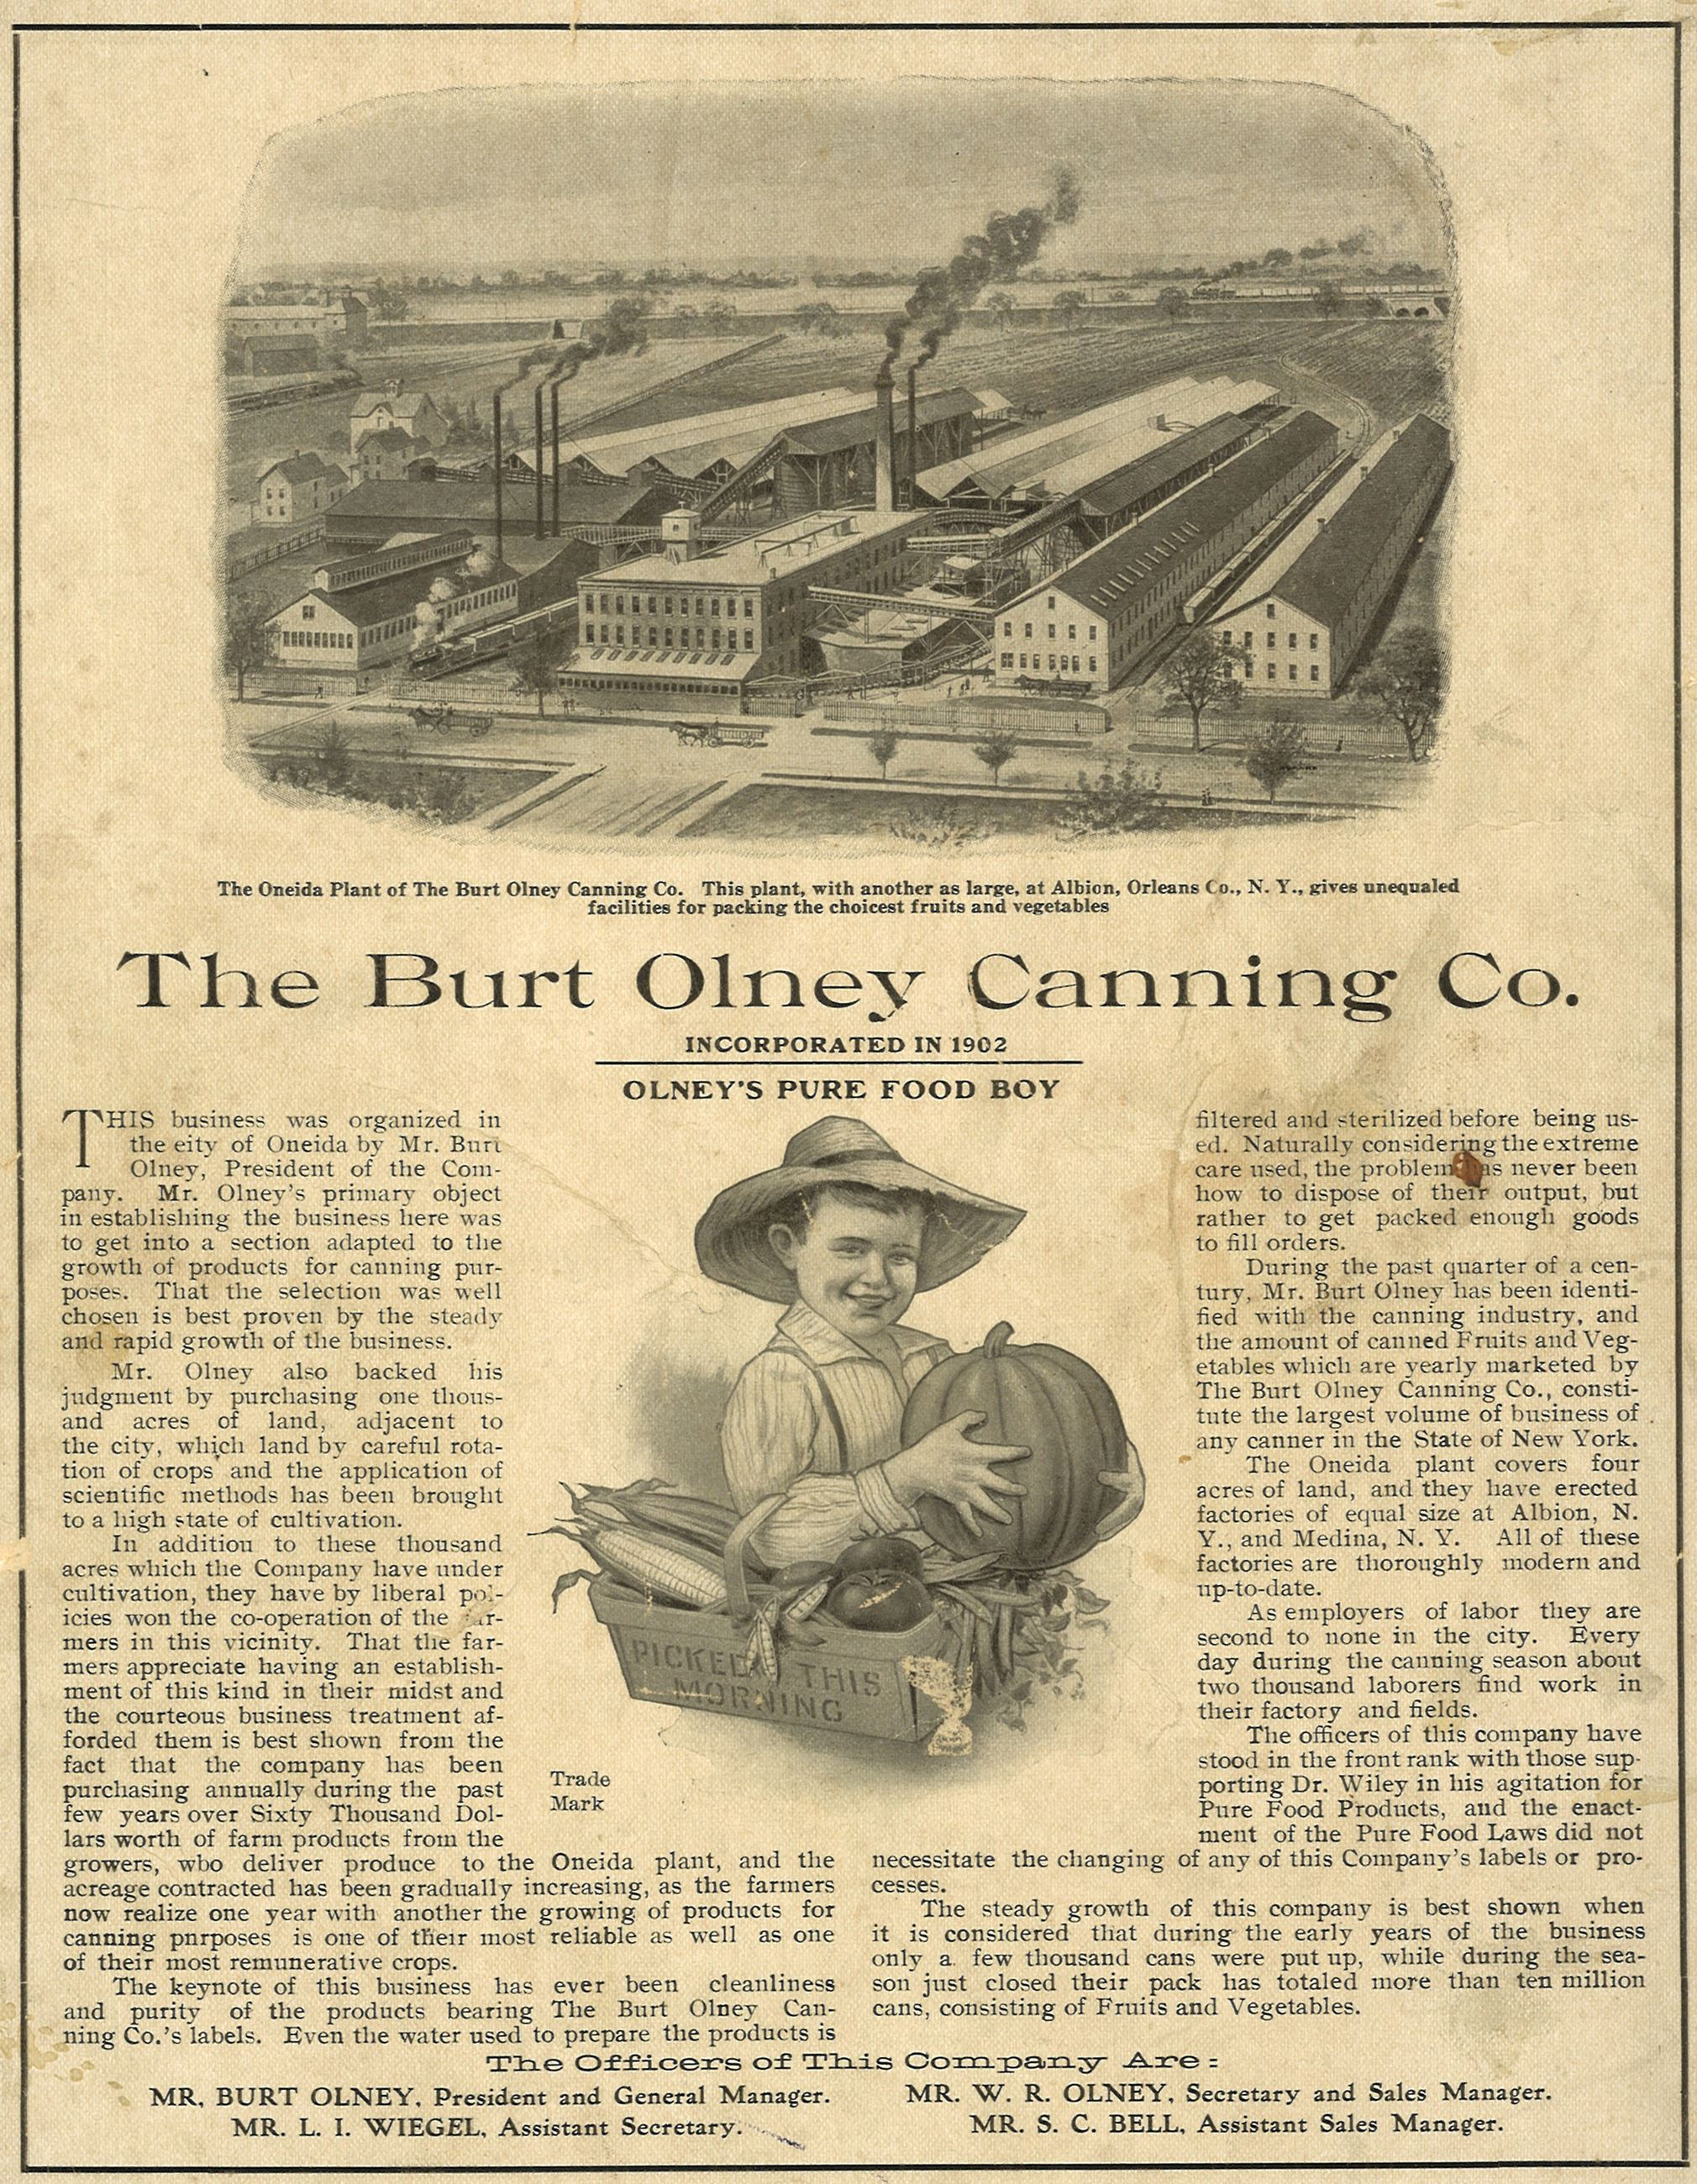 The Burt Olney Canning Co.